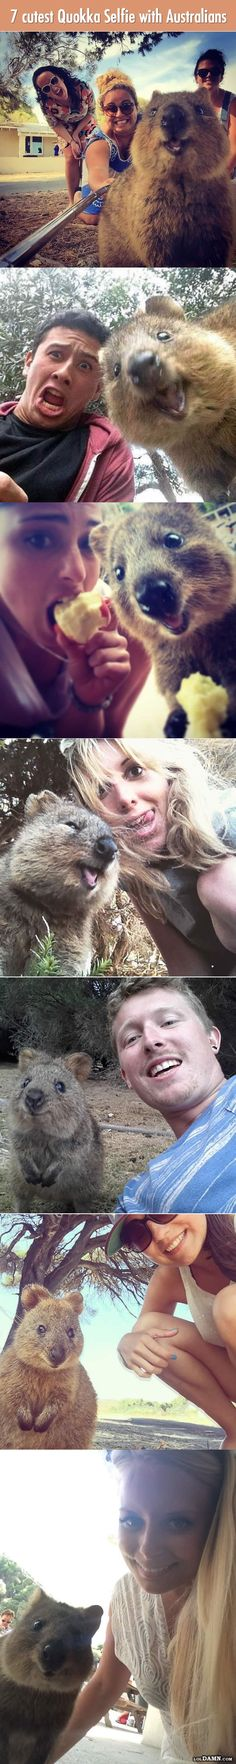 Traveling in Australia? Don't forget to take a cute Quokka selfie. |LOL, Damn! Funny and Awesome pictures. | Visit http://gwyl.io/  for more diy/kids/pets videos